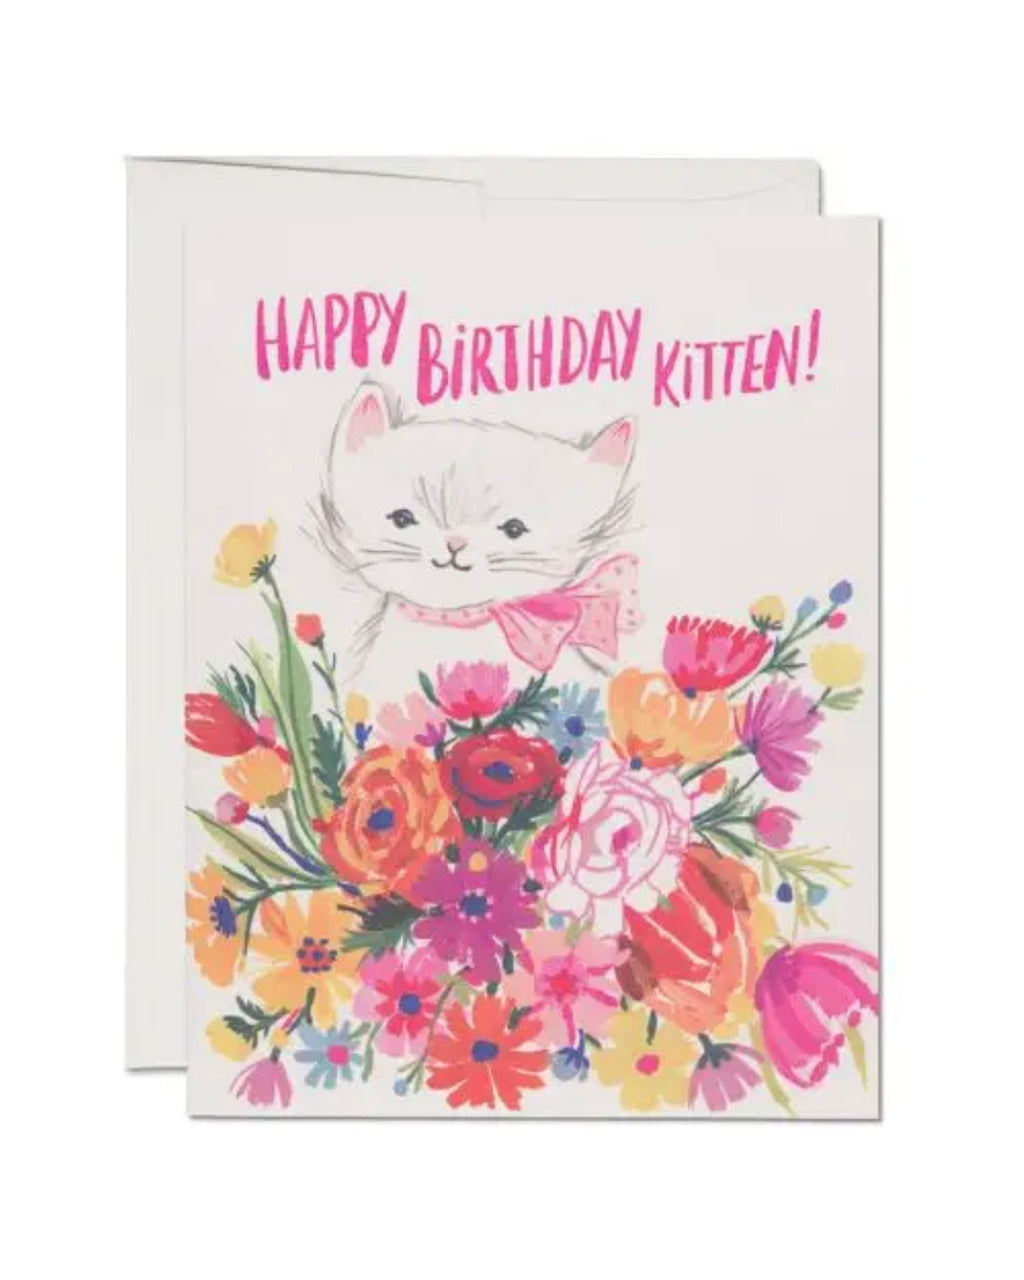 Happy Birthday Kitten Card